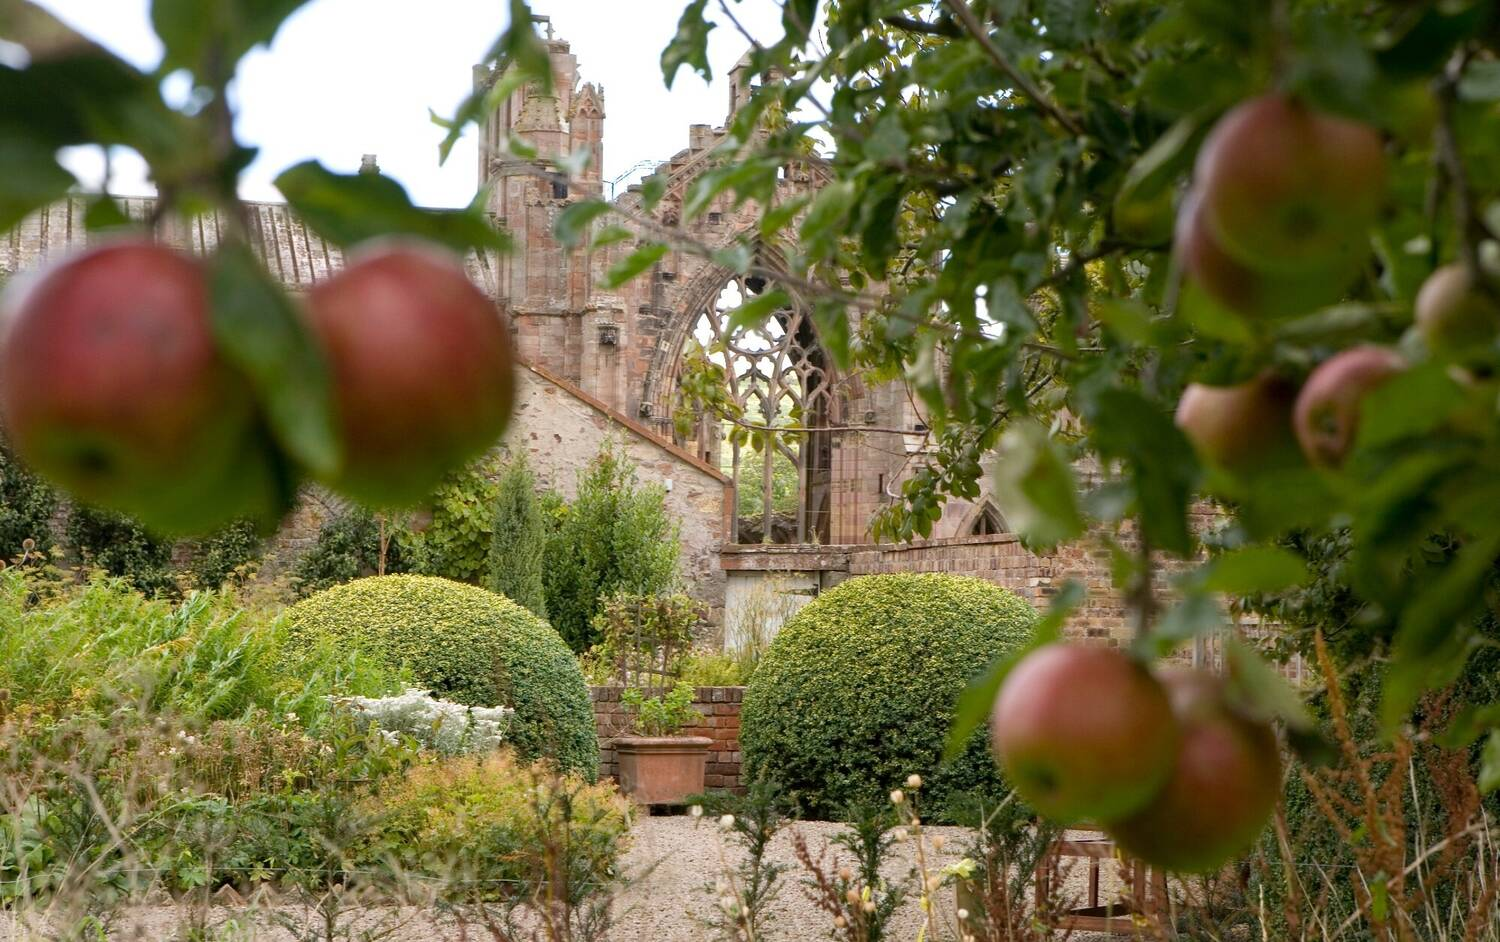 Close-up of red-green apples hanging from a tree, with Melrose Abbey in the background.